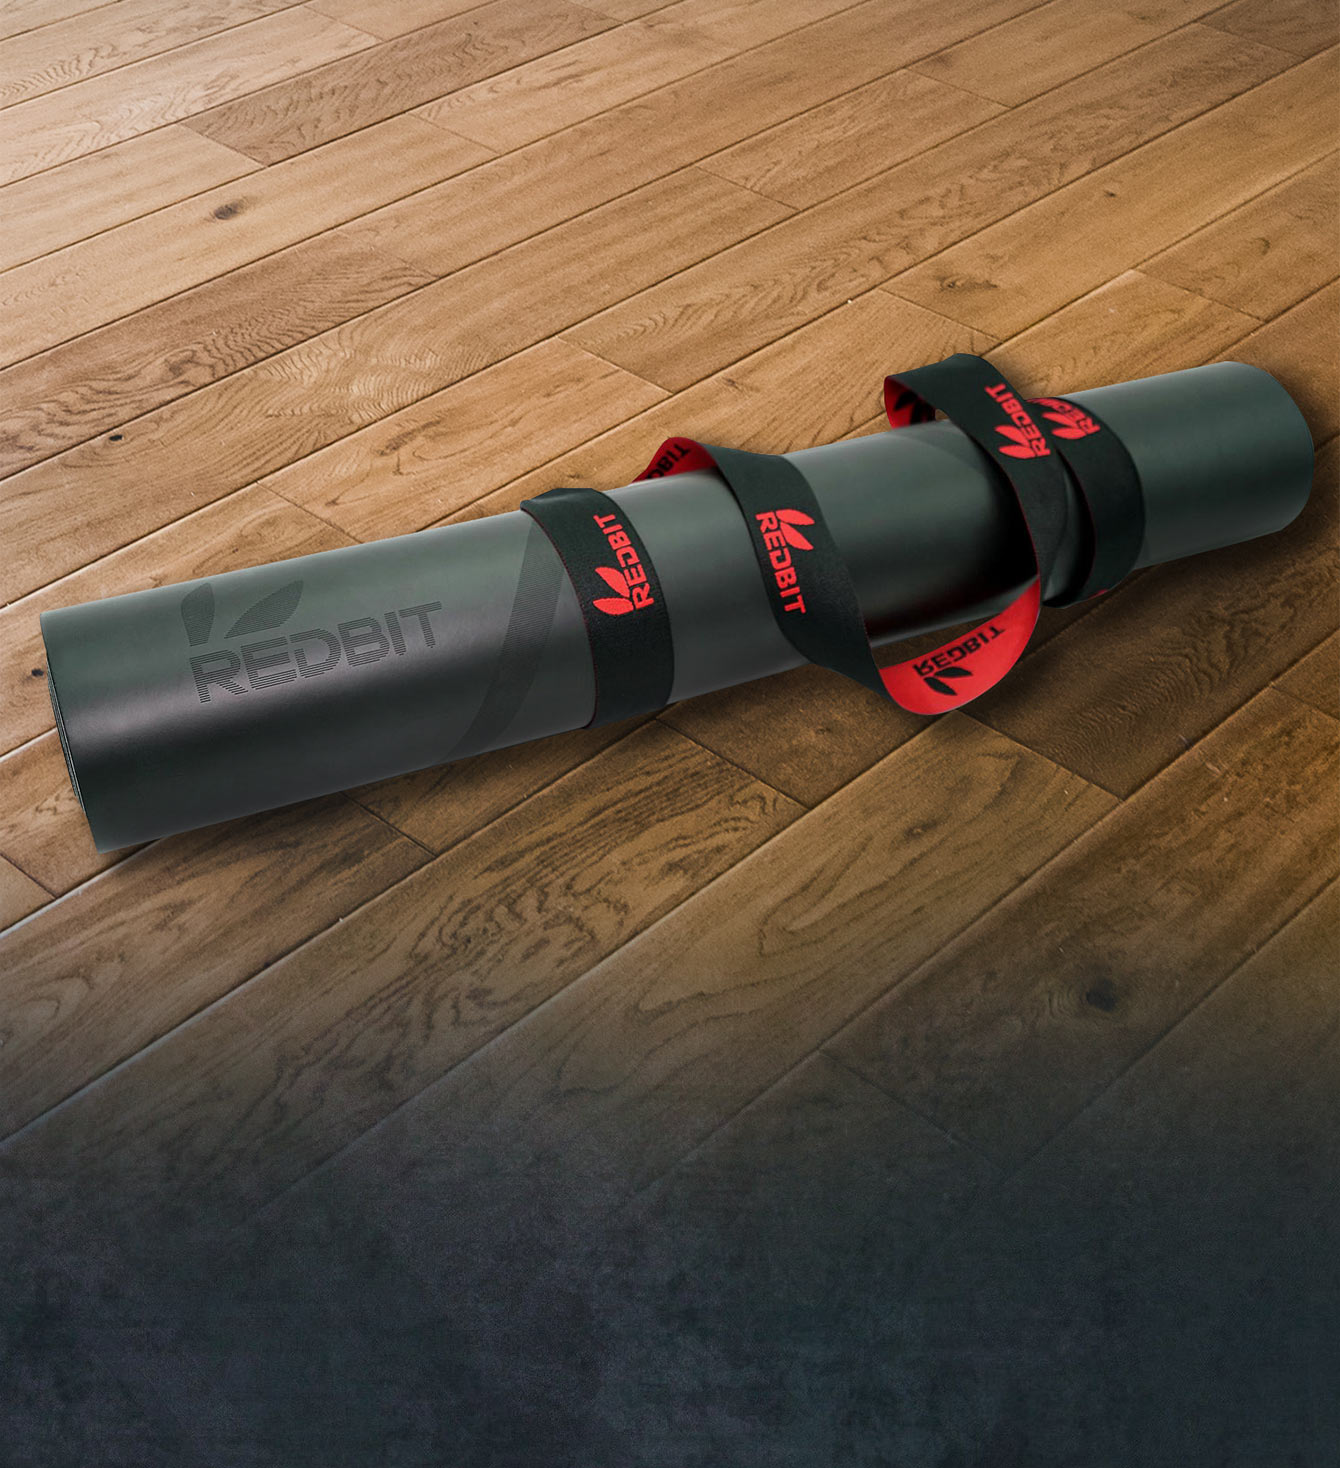 redbit-highlight-yoga-mat2